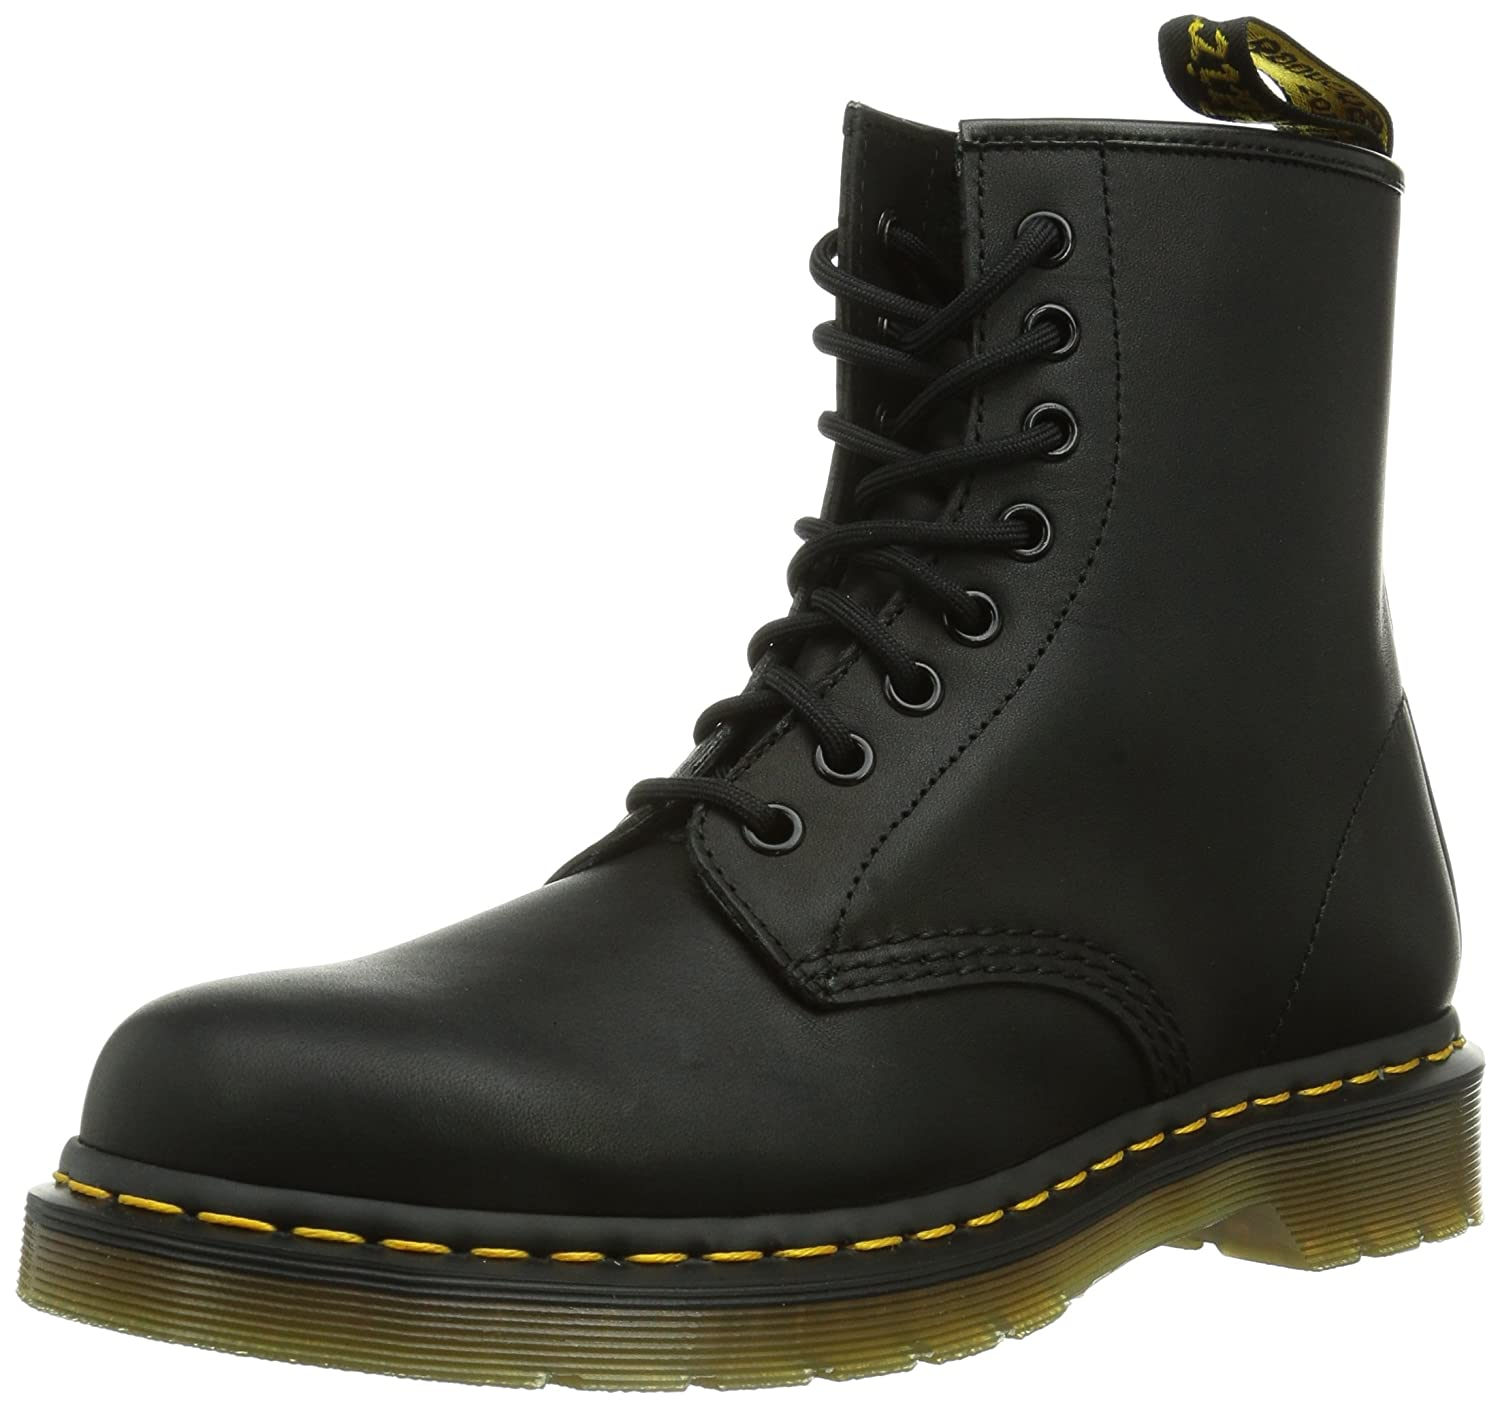 Dr. Martens Men's 1460 Combat Boot, 8.5 B(M) US Women/7.5 D(M) US Men B00BN4OOUE 6.5 Medium UK (US Men's 8.5, Women's 9 US)|Black Greasy